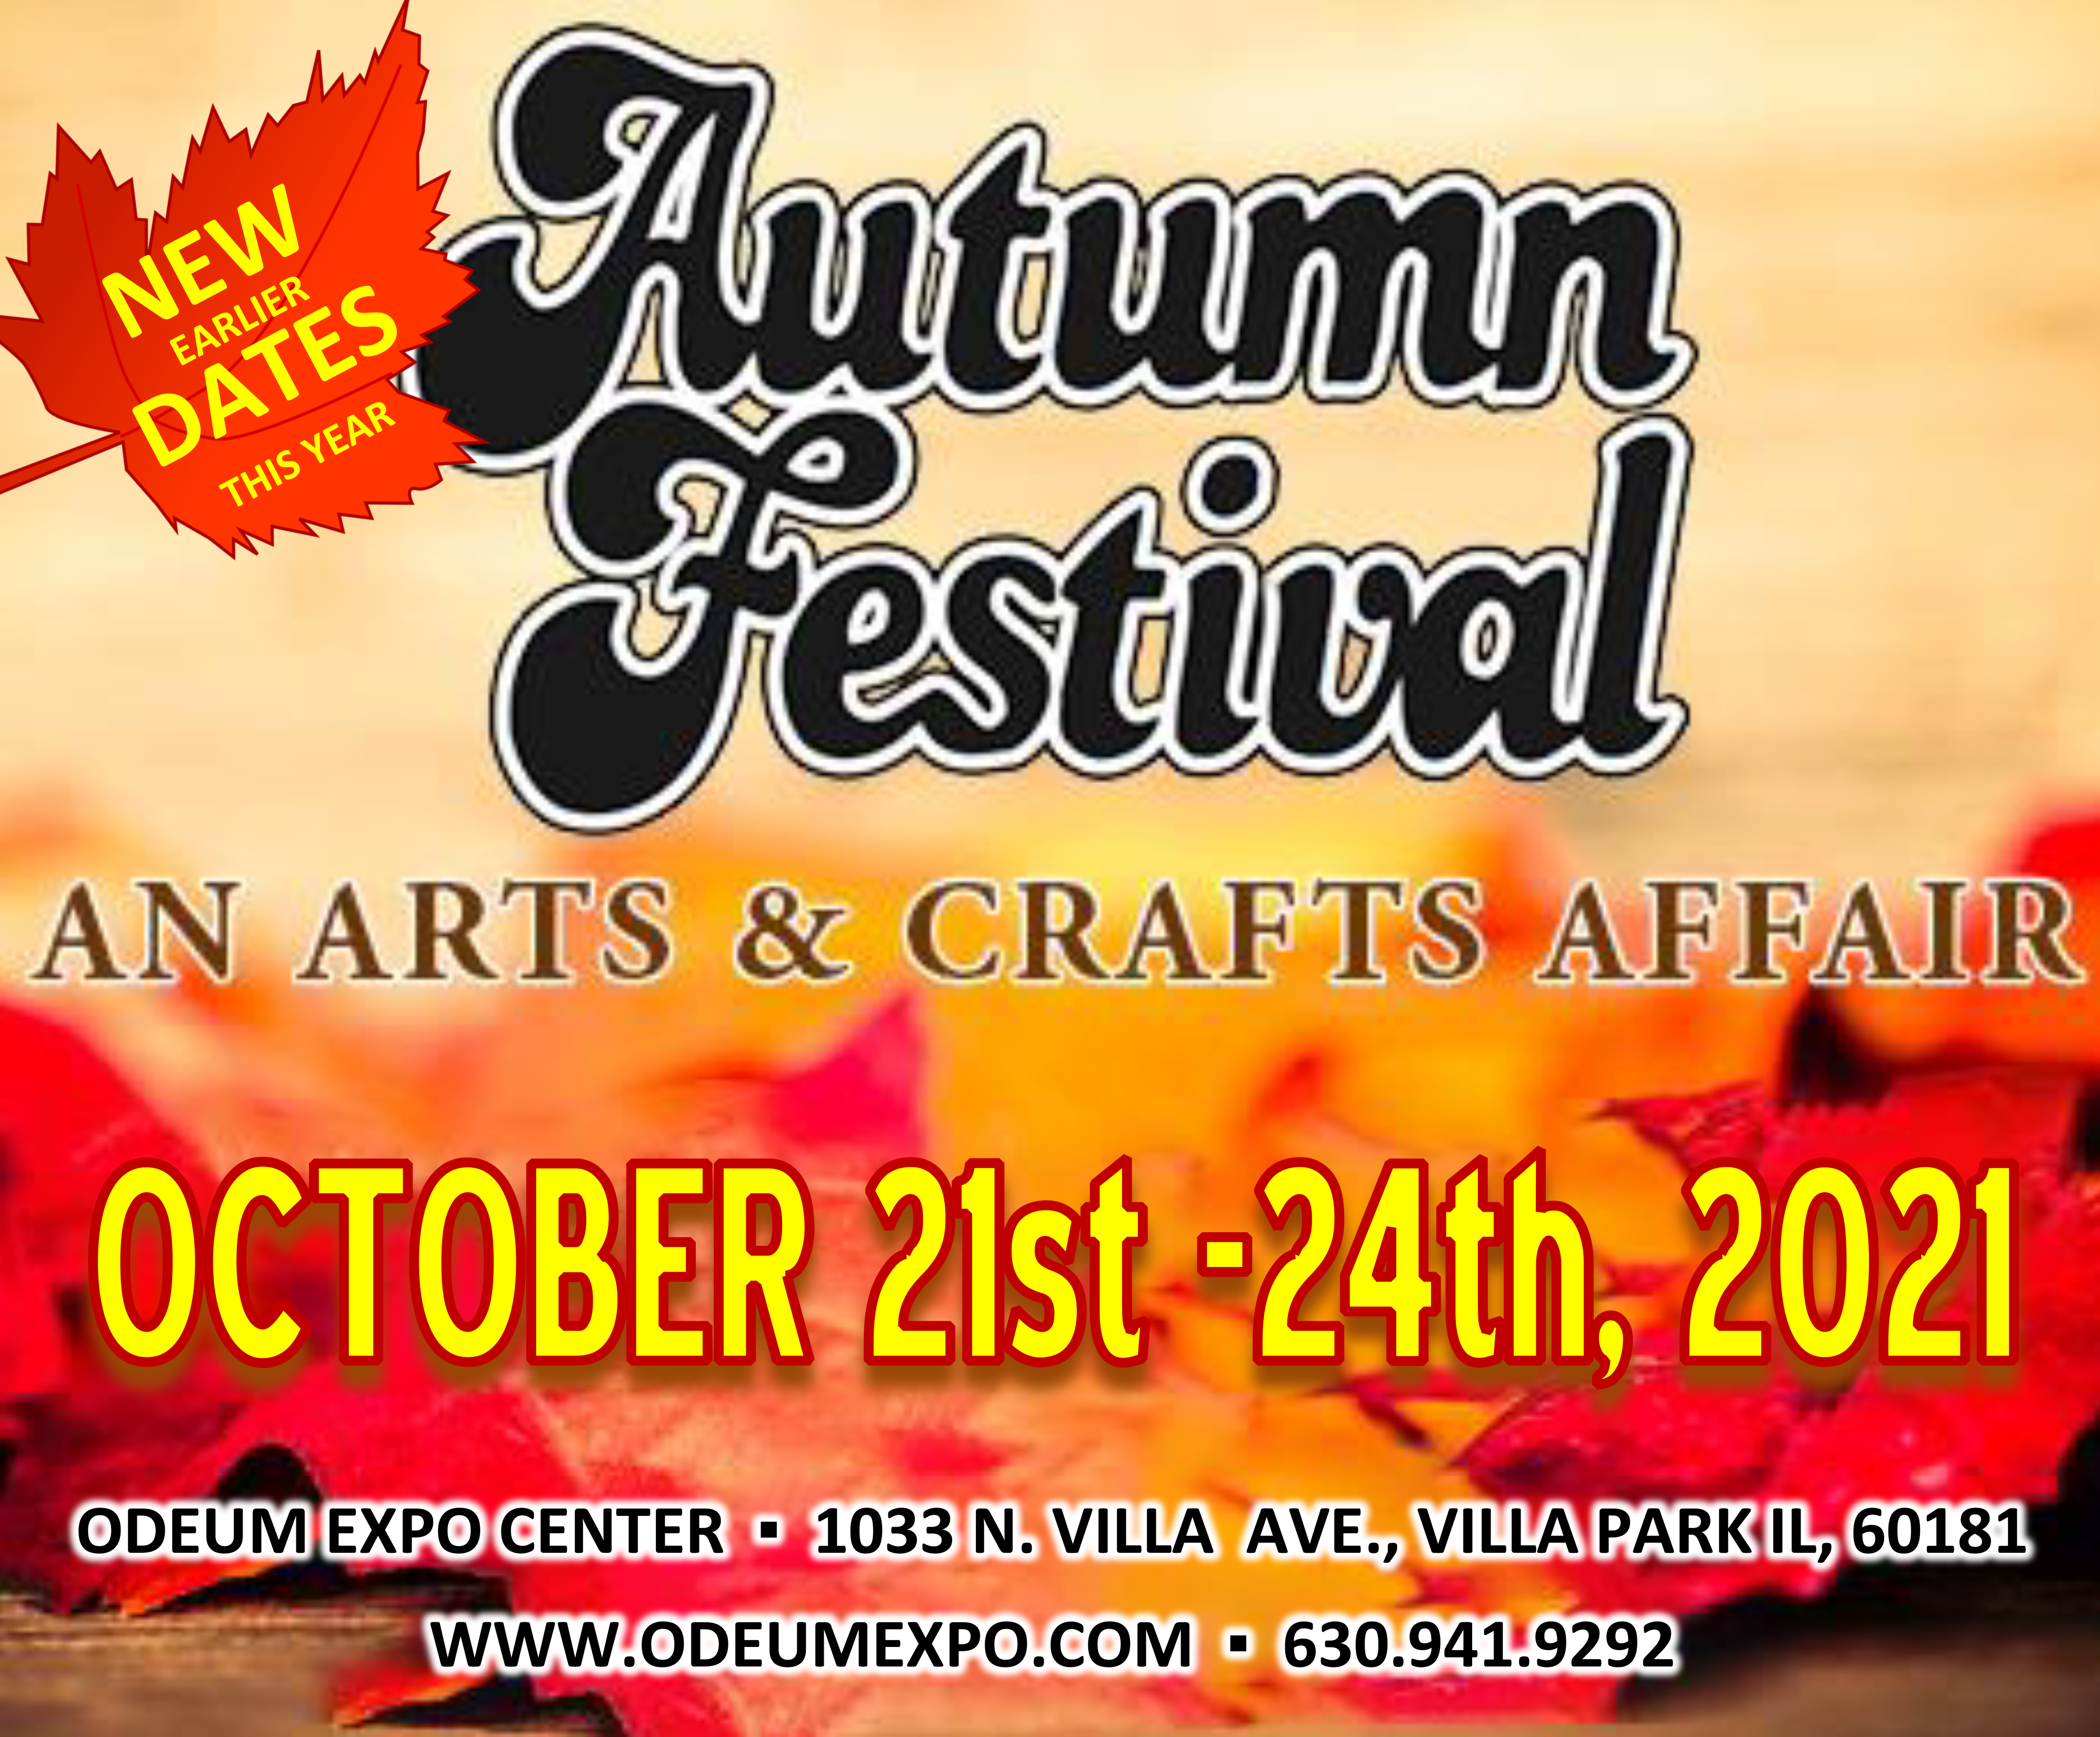 Logo for Autumn Festival An Arts & Crafts Affair returns to the Odeum Expo Center in Villa Park, Illinois, October 21-24, 2021